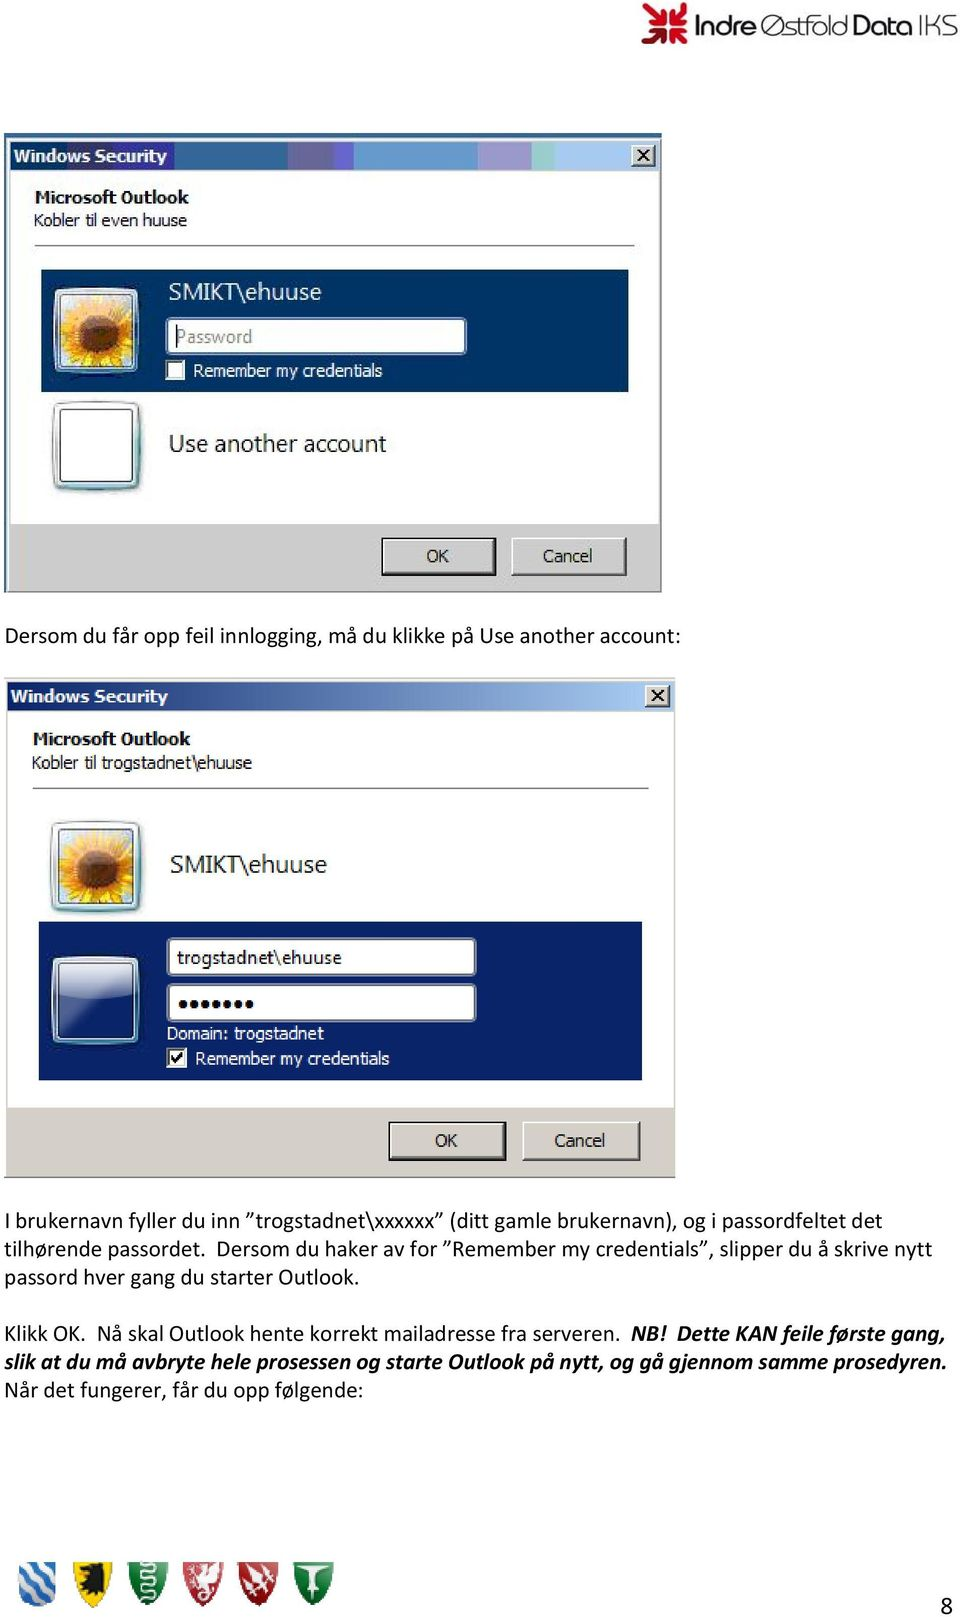 Dersom du haker av for Remember my credentials, slipper du å skrive nytt passord hver gang du starter Outlook. Klikk OK.